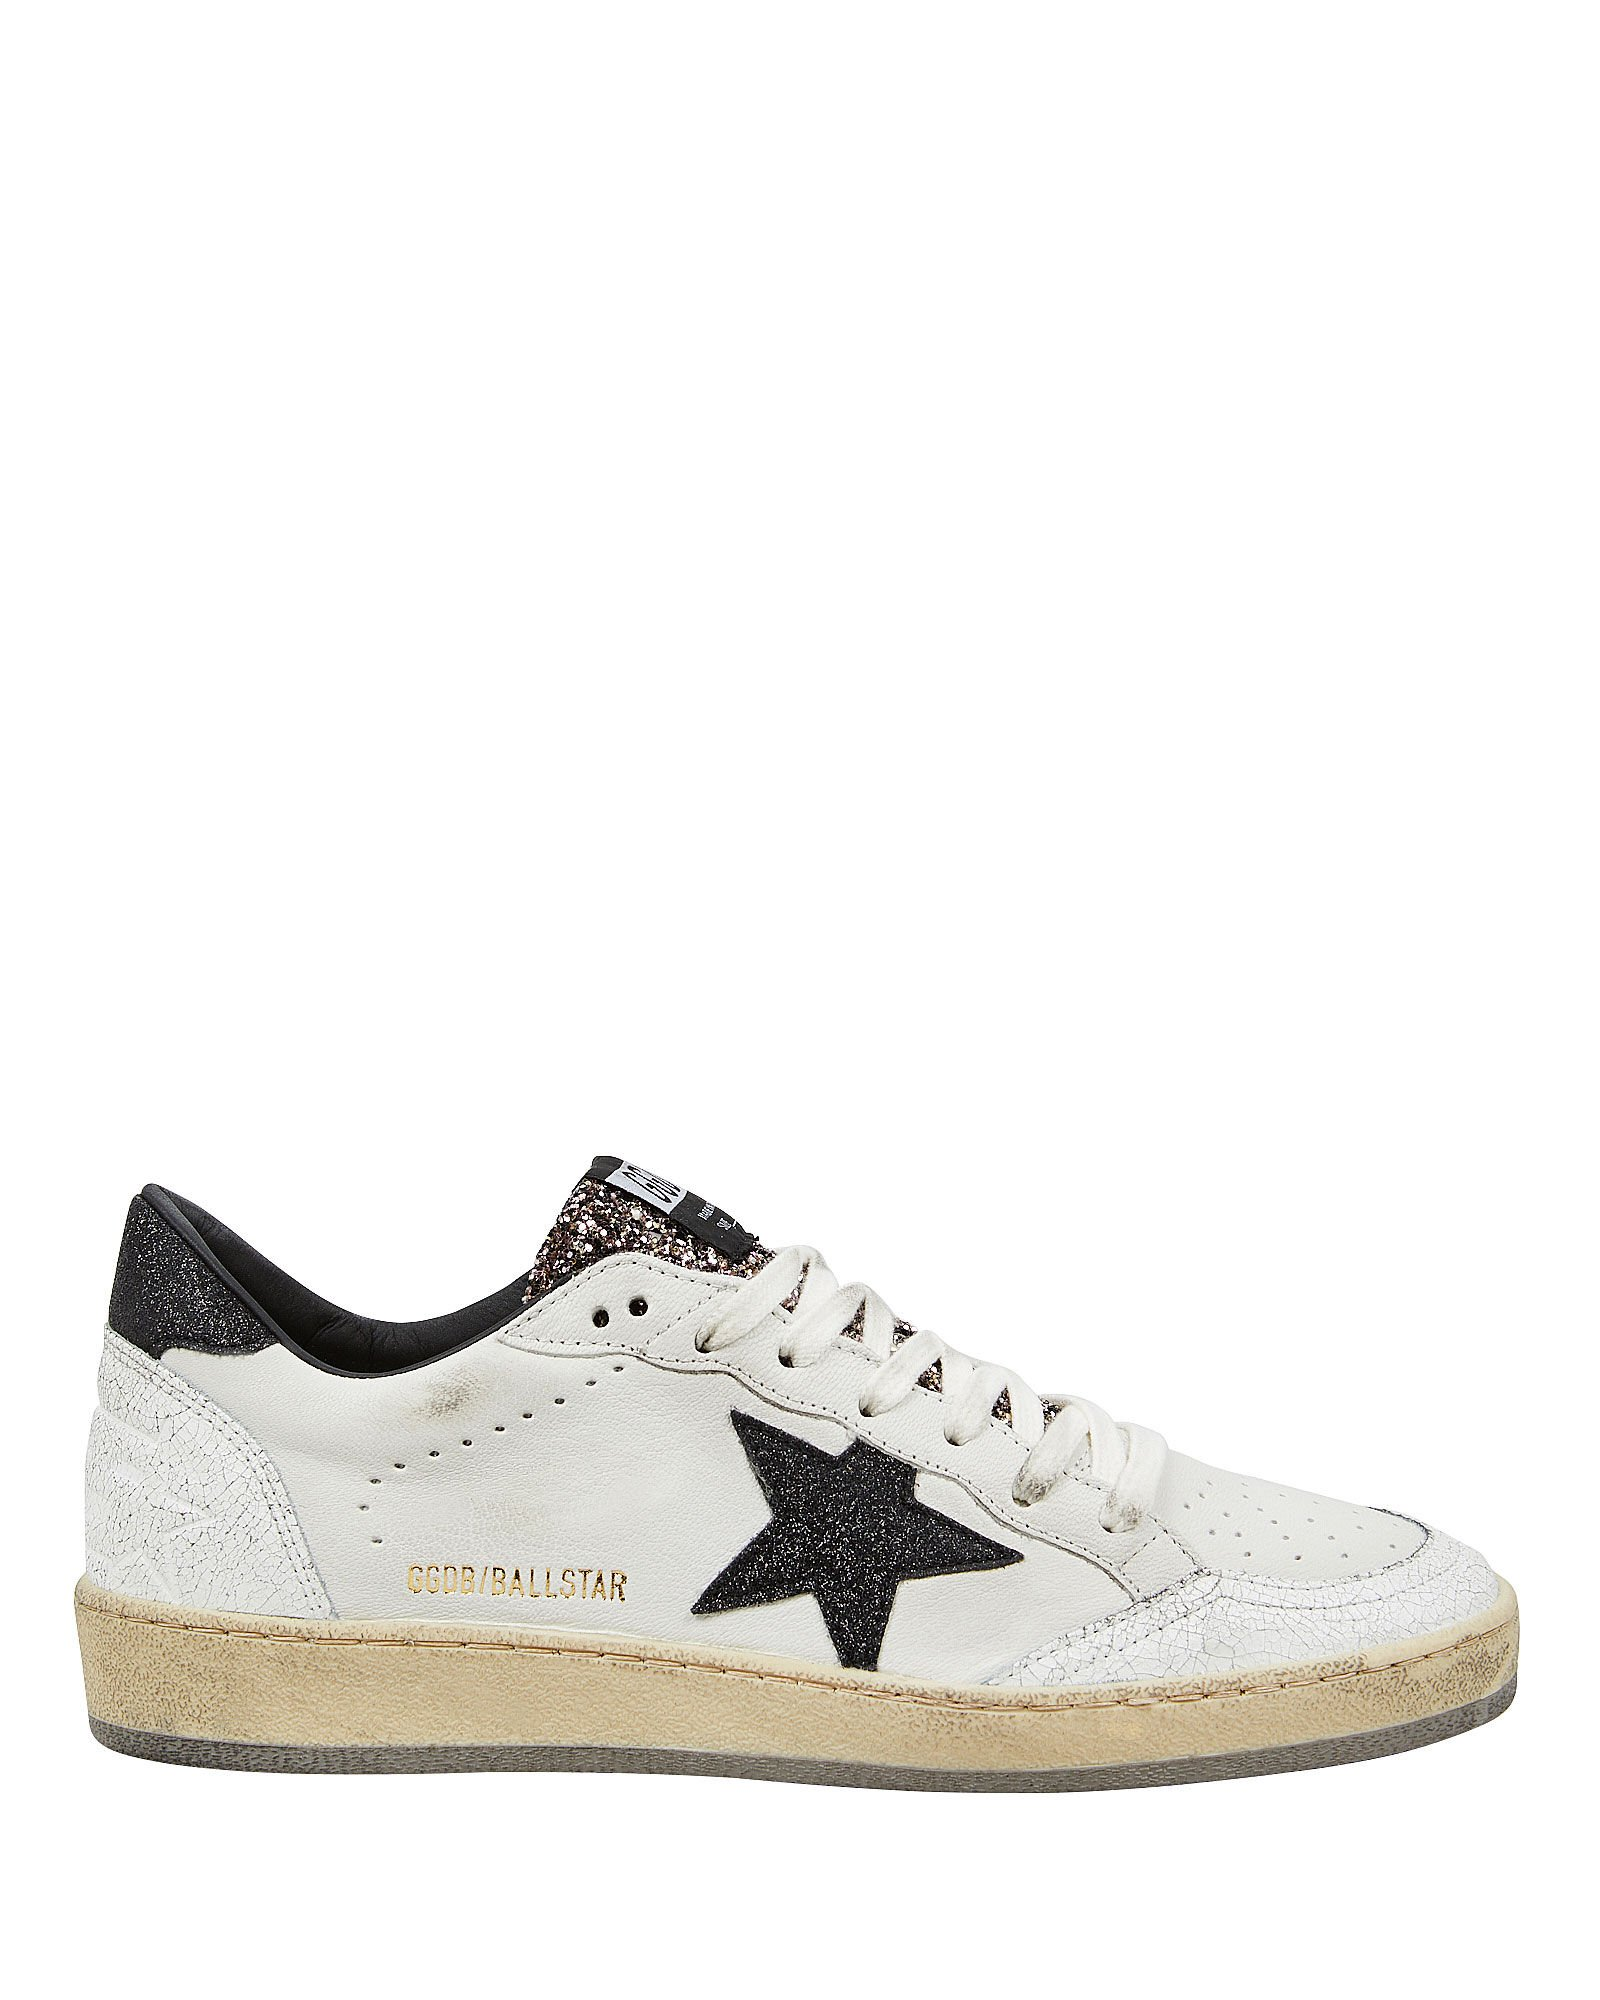 Ball Star Low Top Sneakers, BLK/WHT, hi-res